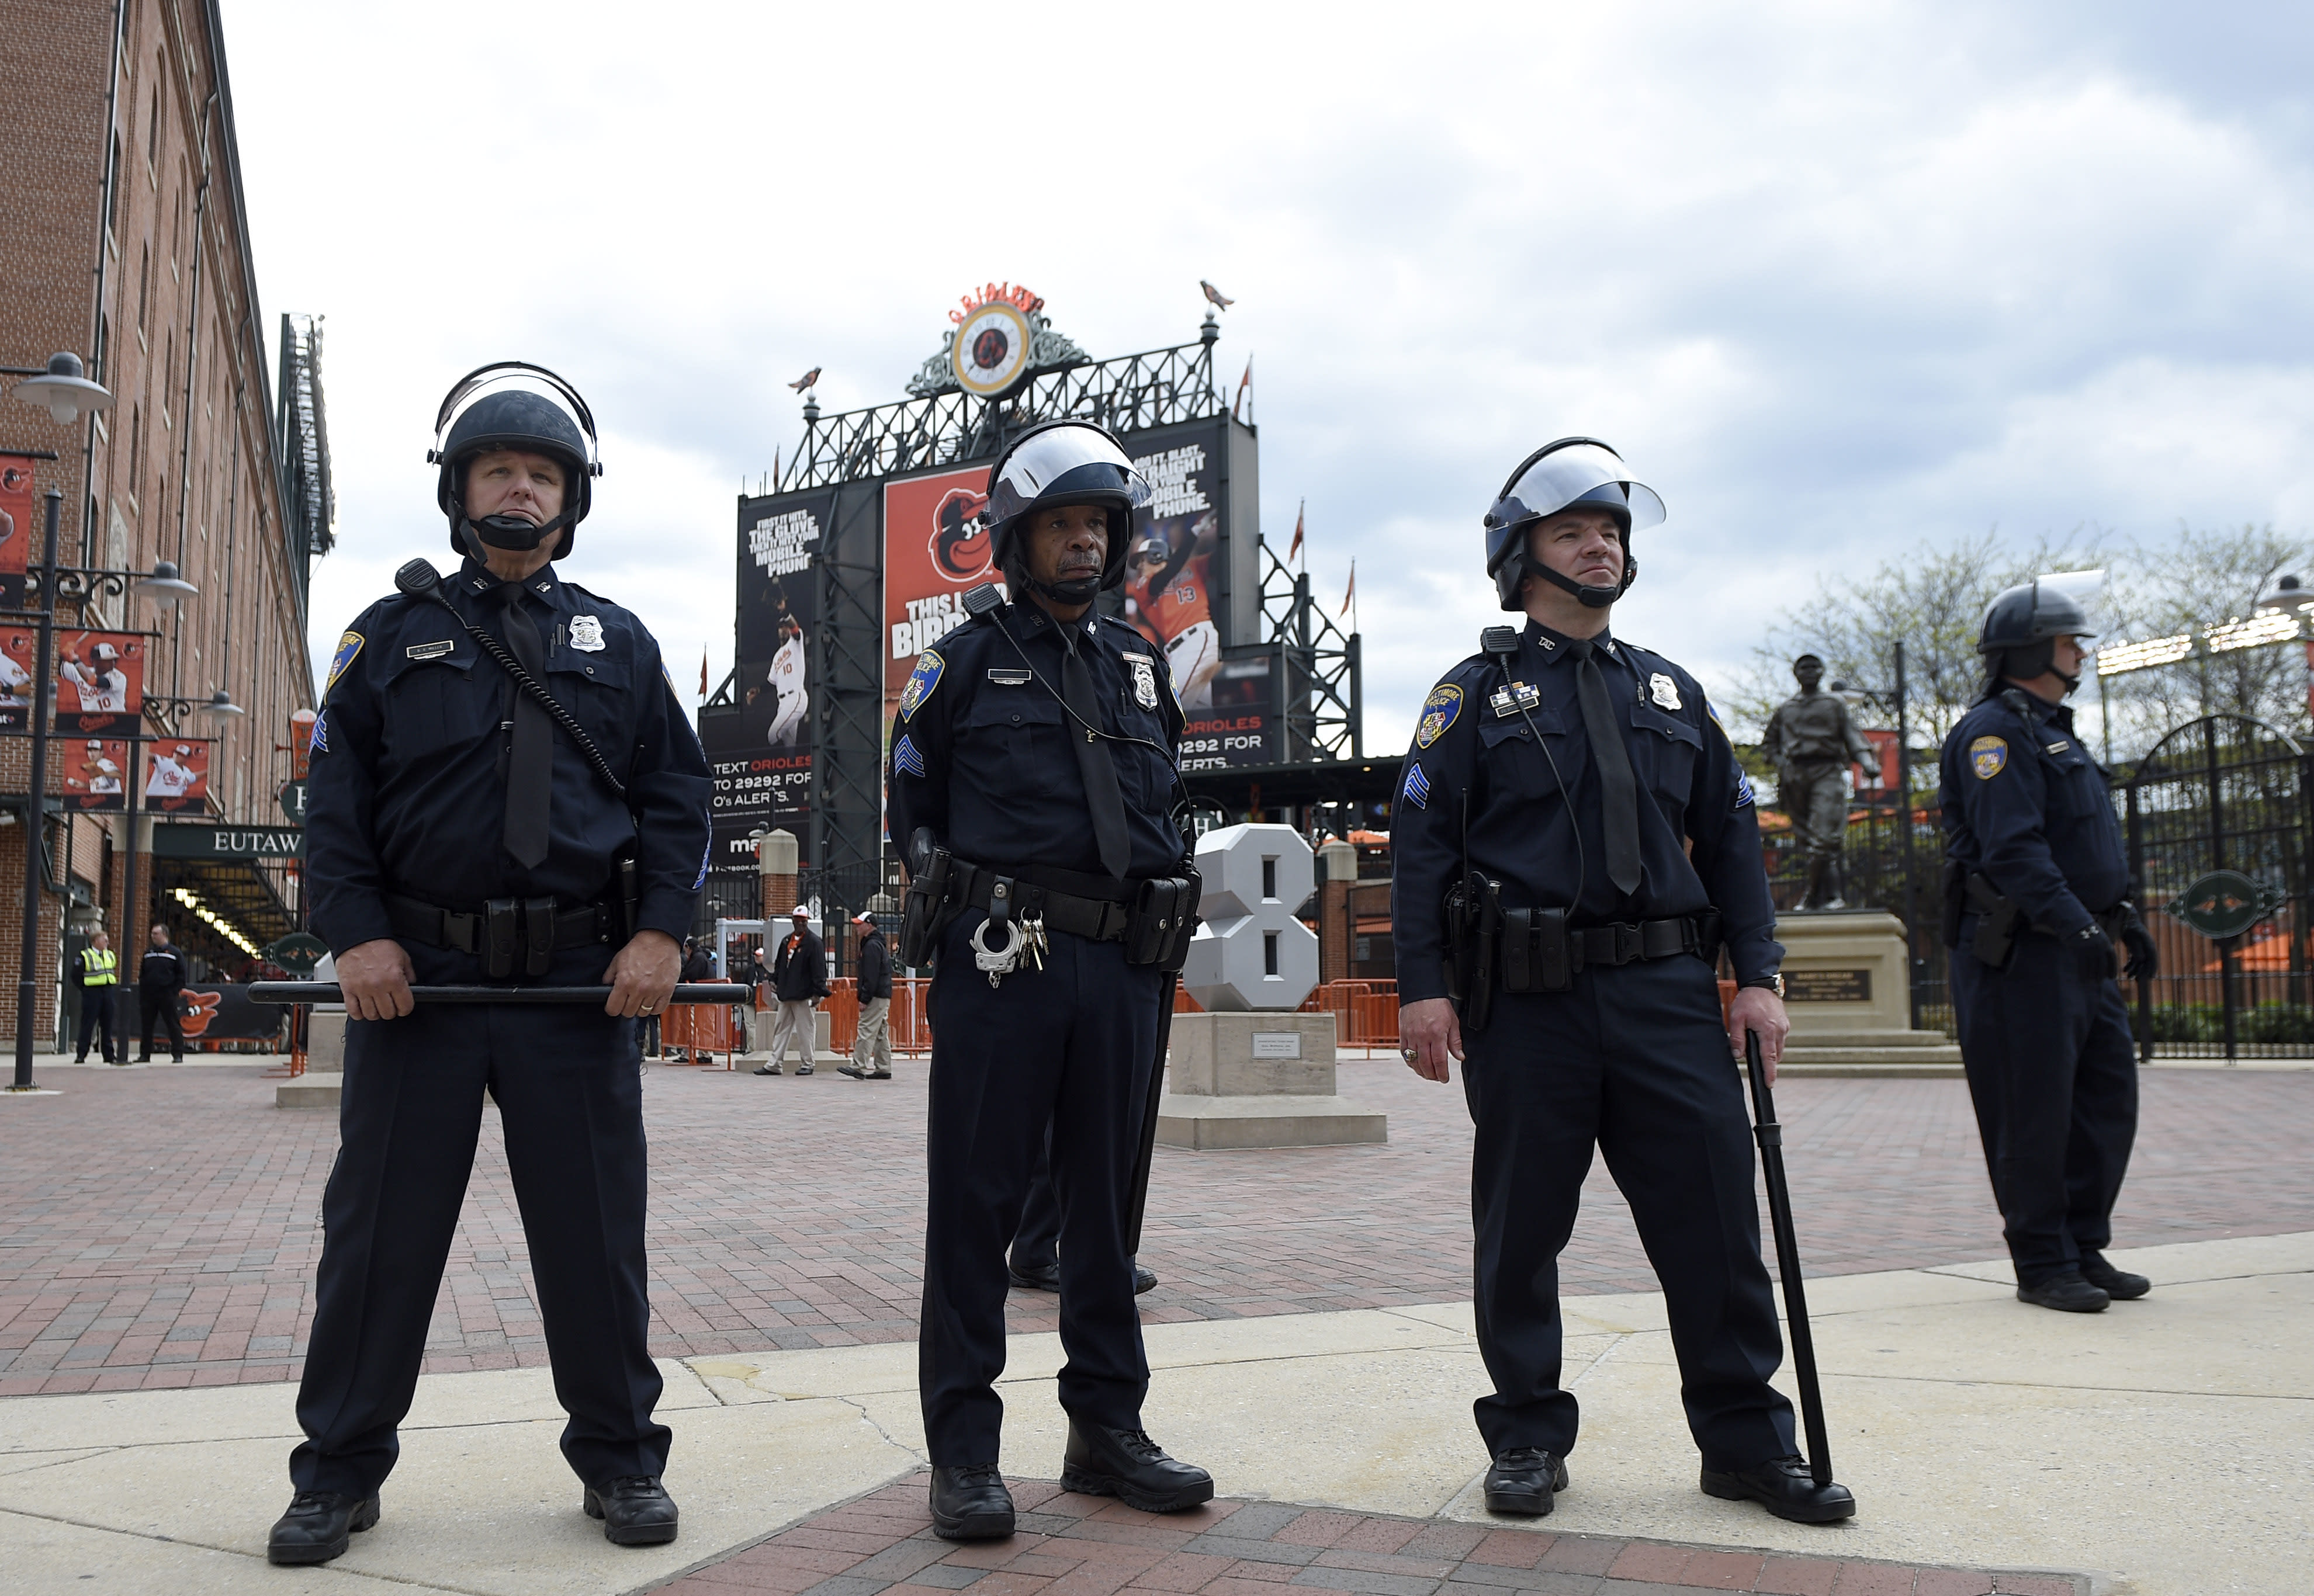 Orioles postpone Monday's game due to ongoing riots in Baltimore